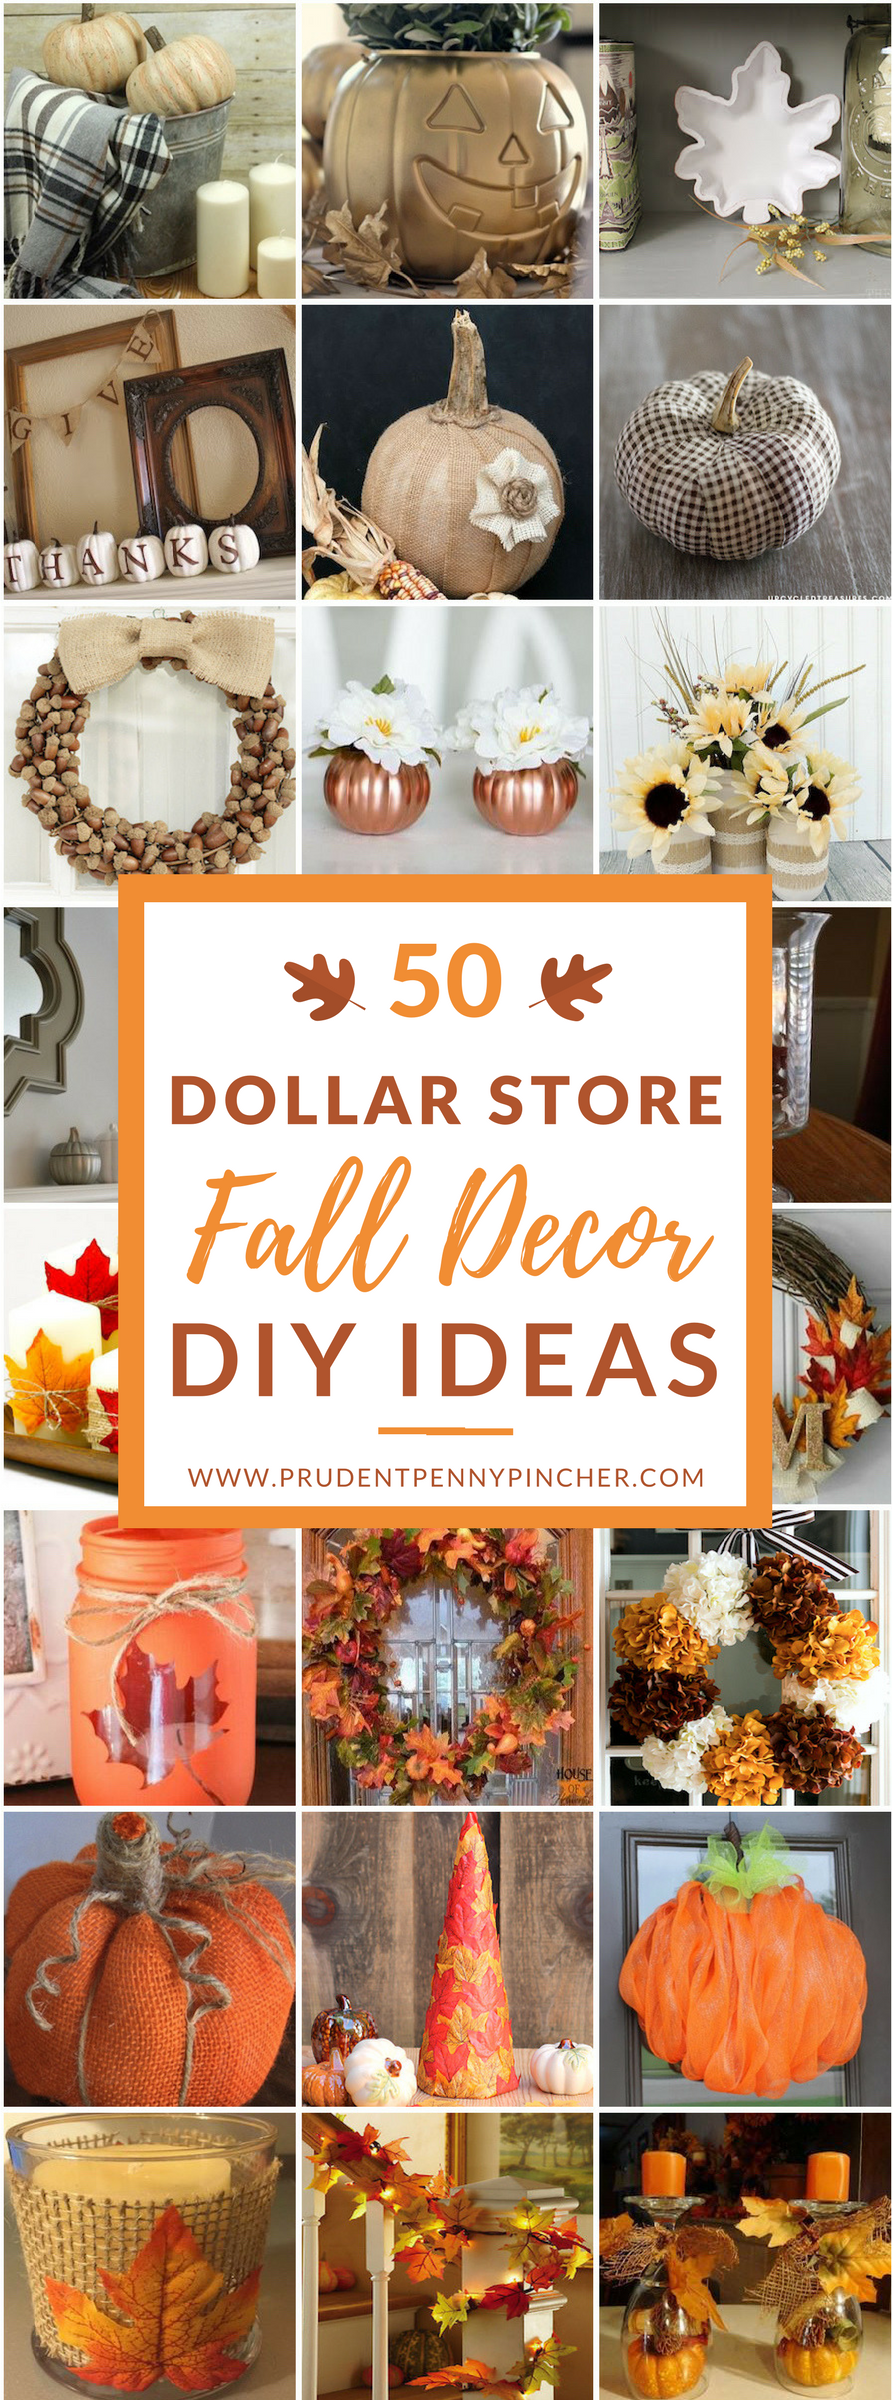 50 Dollar Store Fall Decor Diy Ideas Thanksgiving Fall